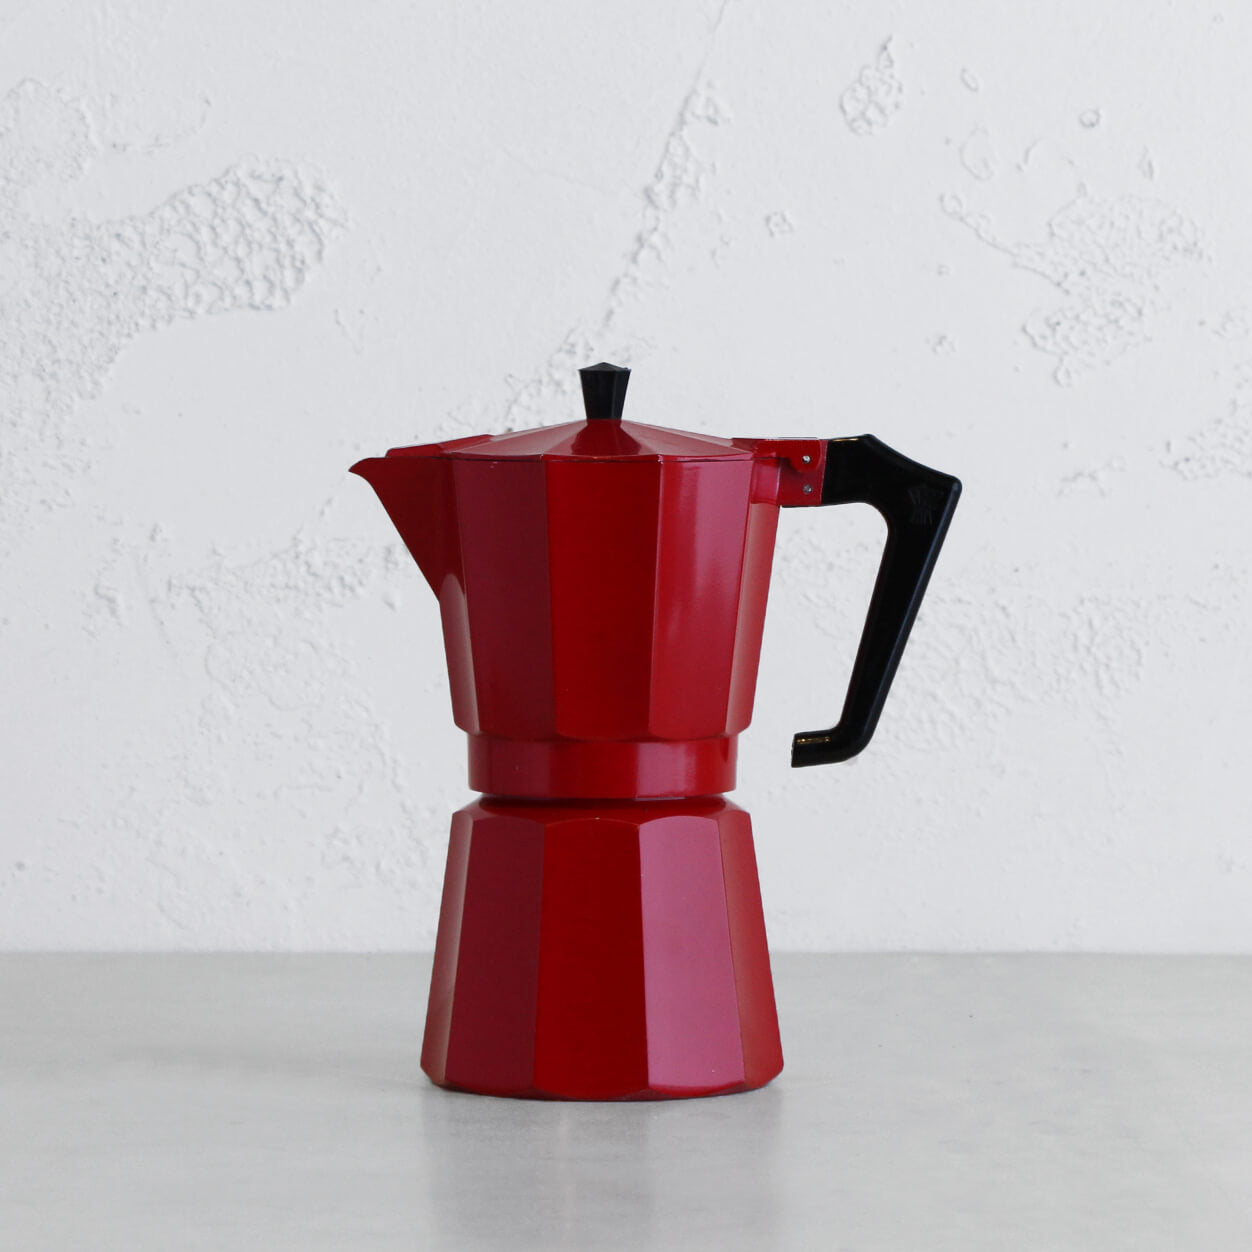 PEZZETTI ITALEXPRESS ITALIAN COFFEE MAKER | 9 CUP | RED